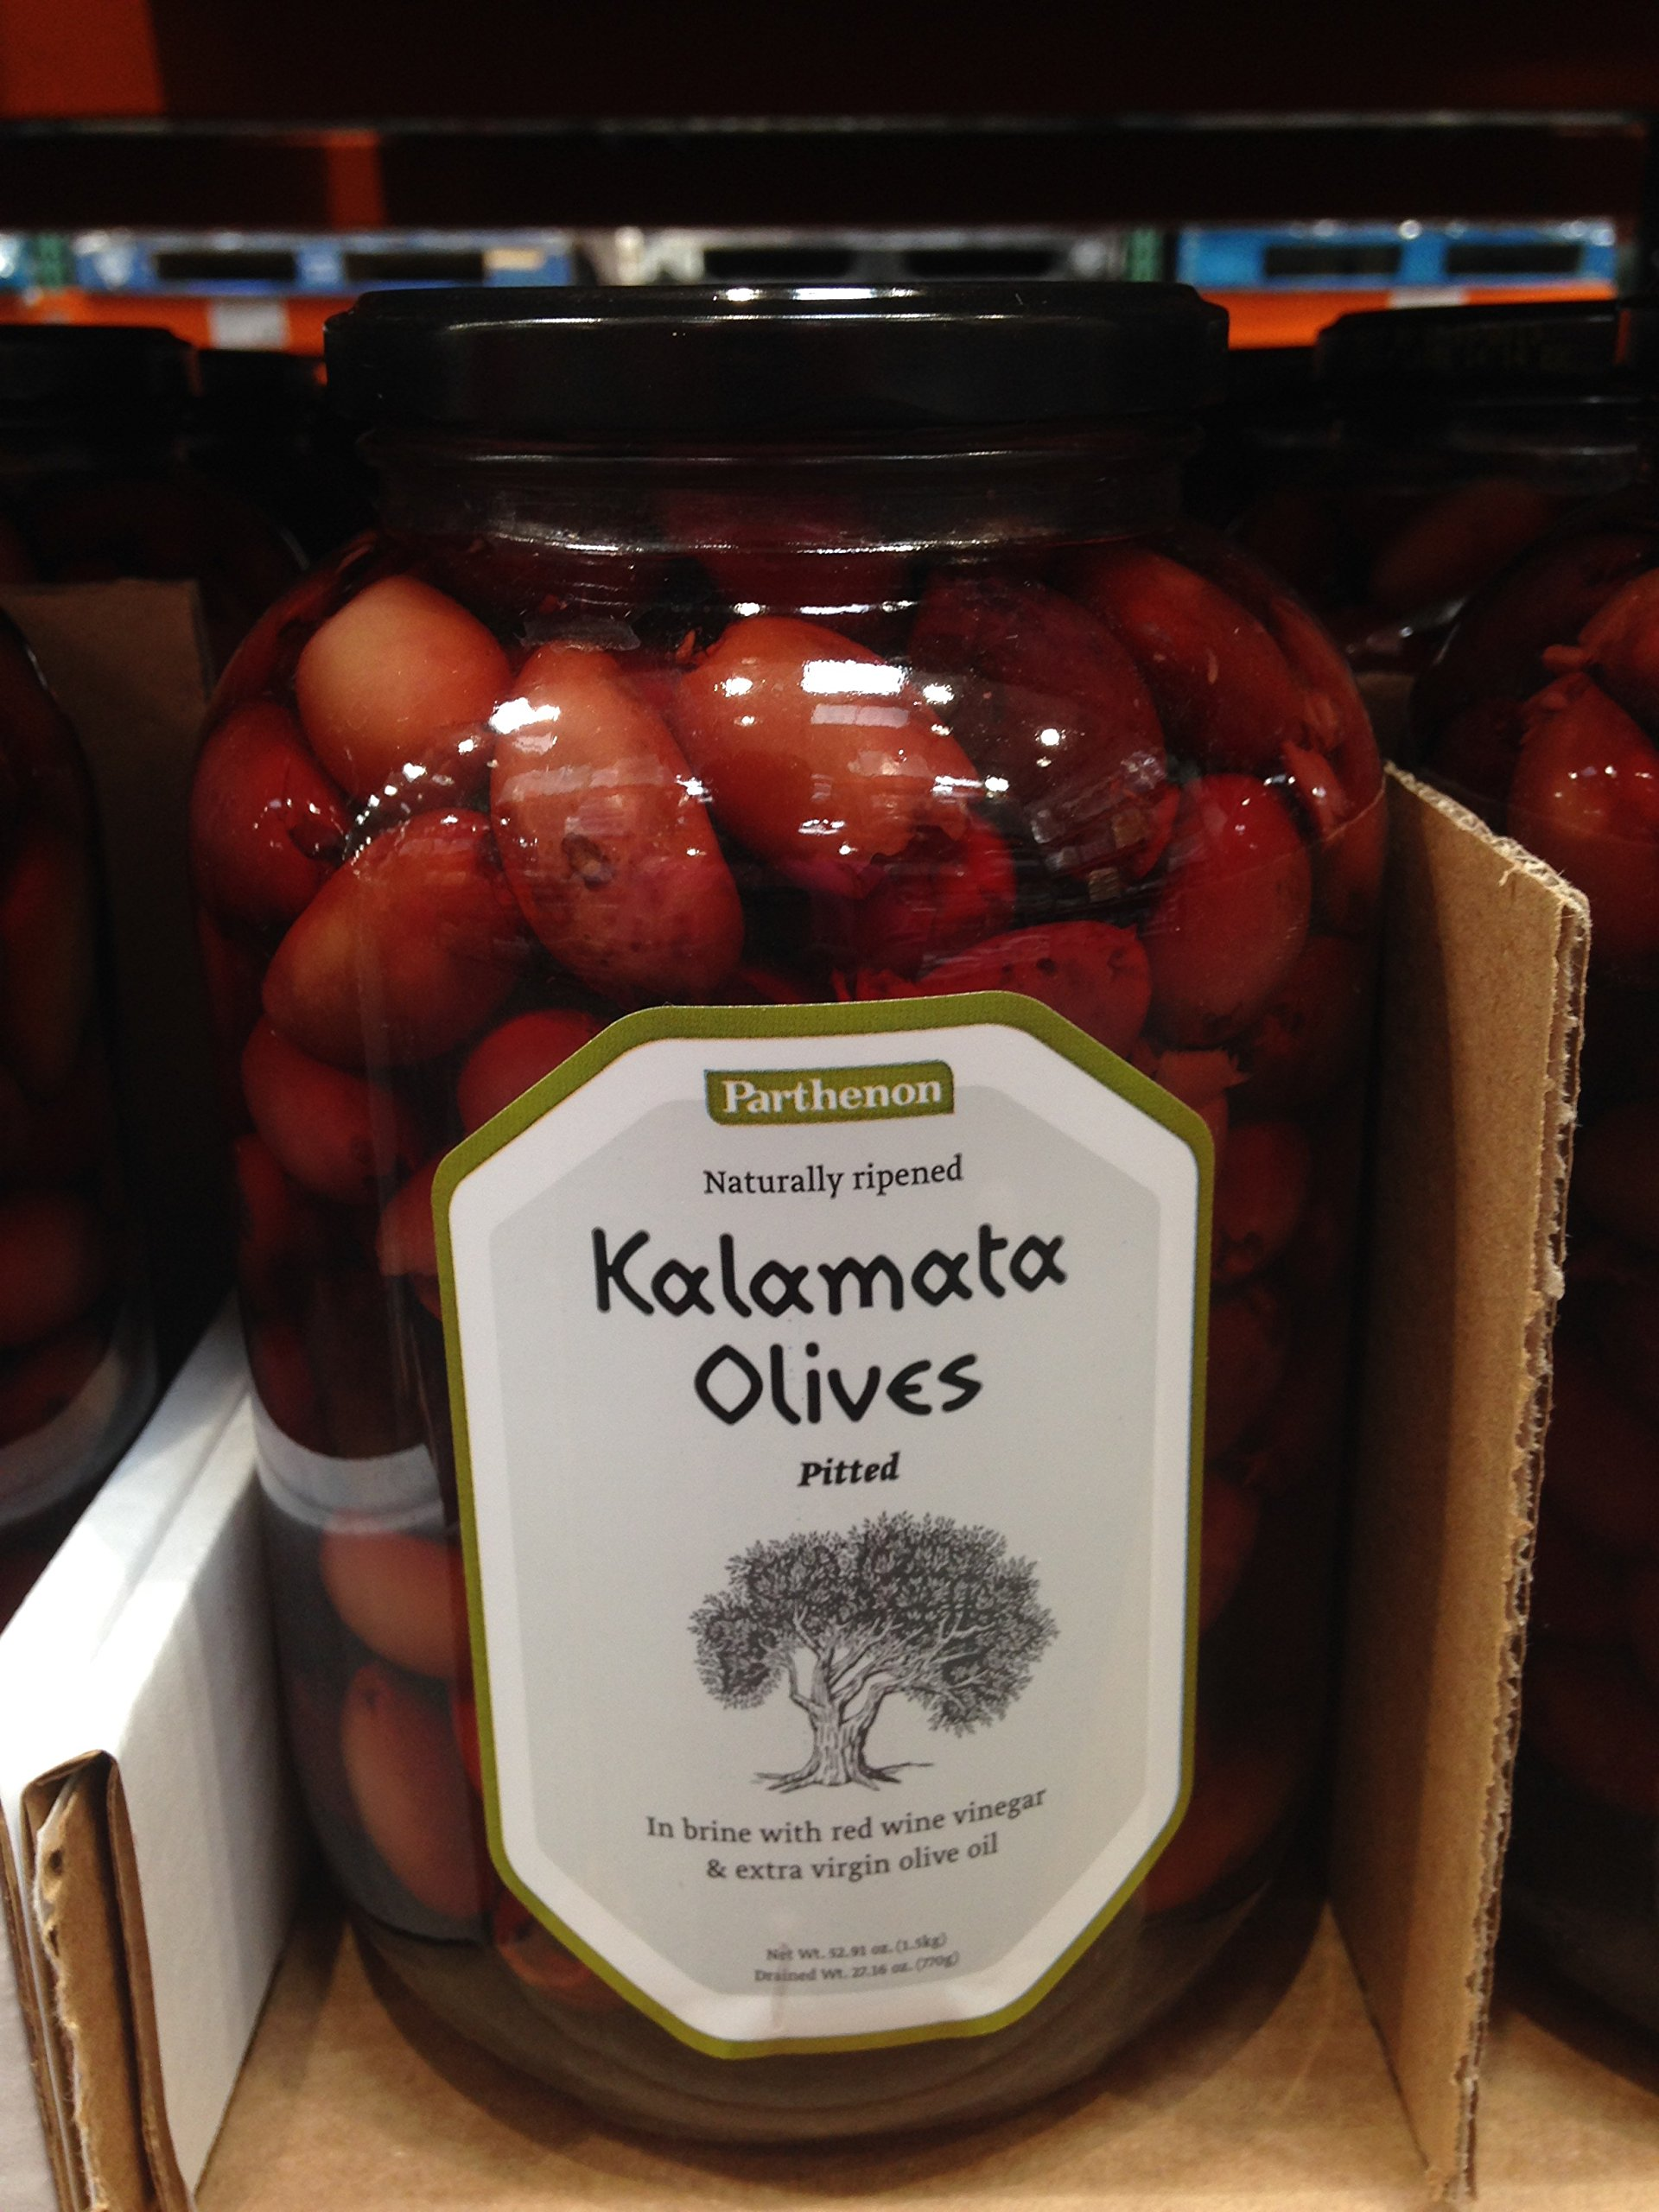 Parthenon pitted kalamata olives 1.69 lb